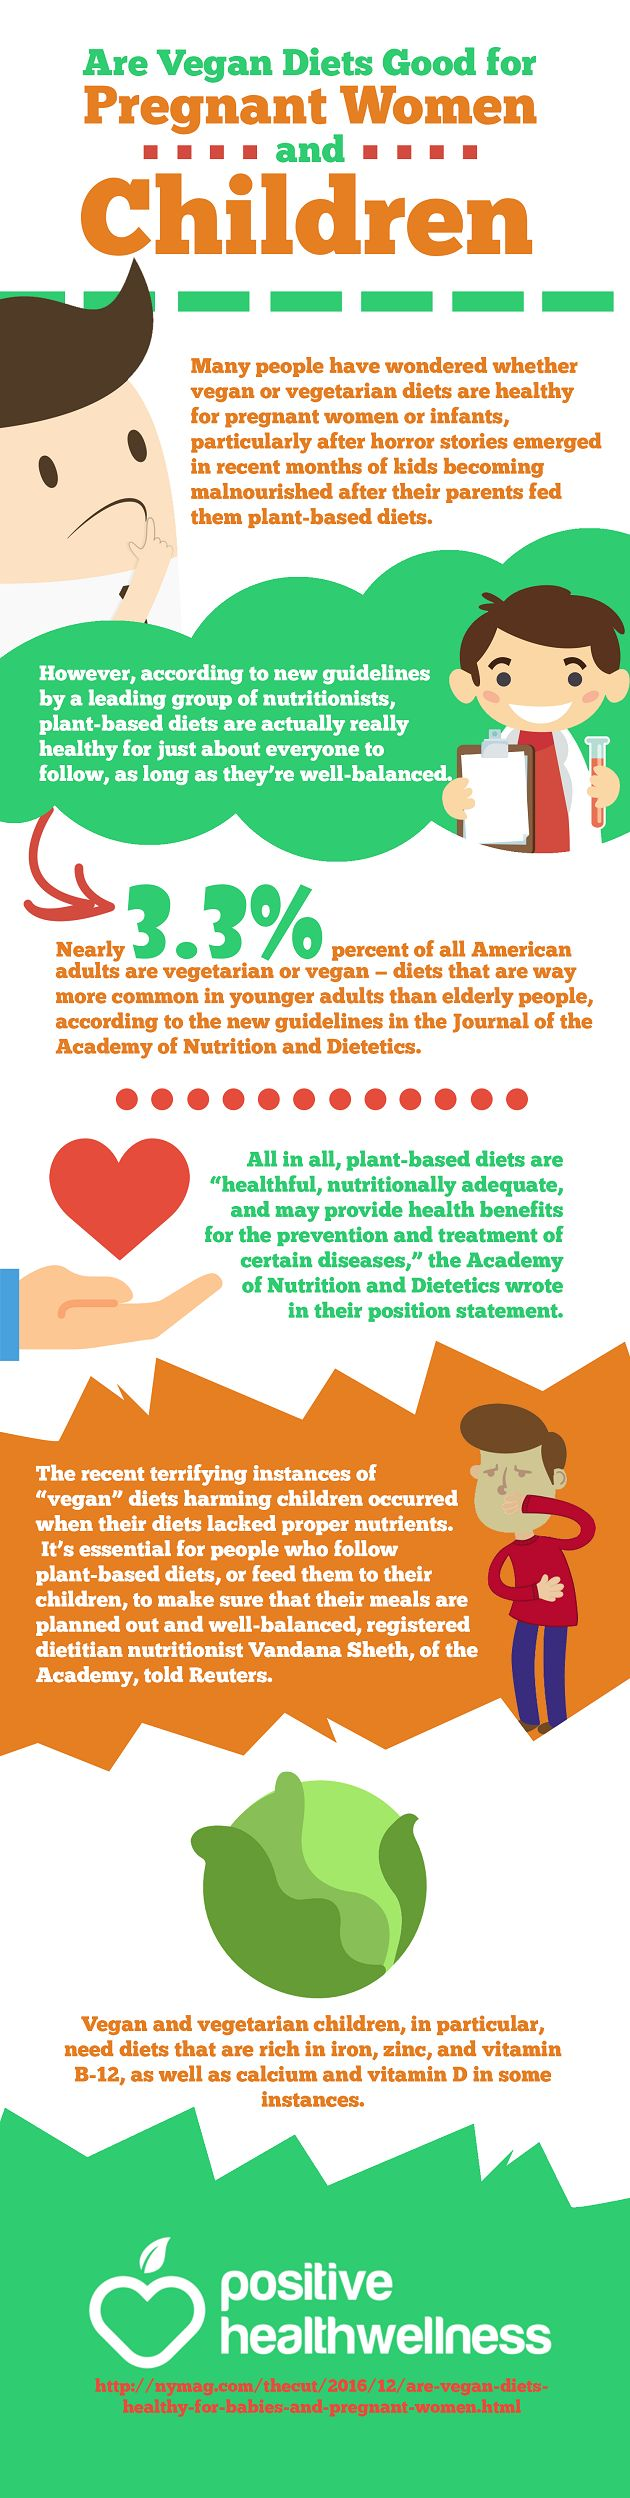 Are Vegan Diets Good for Pregnant Women and Children – Positive Health Wellness Infographic